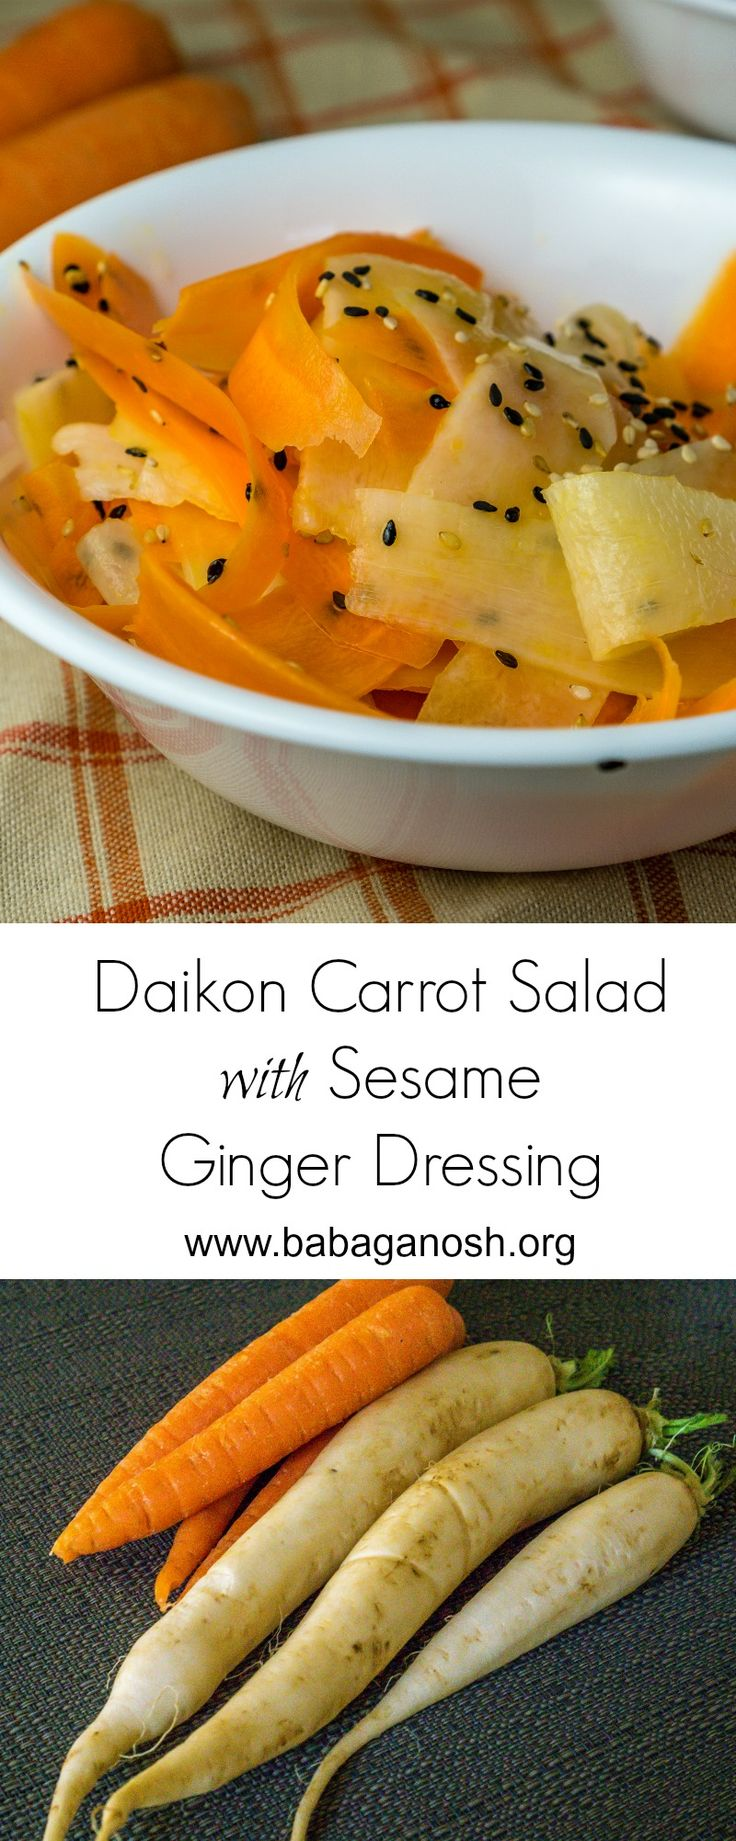 Daikon Carrot Salad with delicious Sesame Ginger Dressing. Daikon is a very mild tasting Chinese radish that can be eaten like a carrot - cooked or raw. Pair these two with delicious Asian dressing - yumm!!